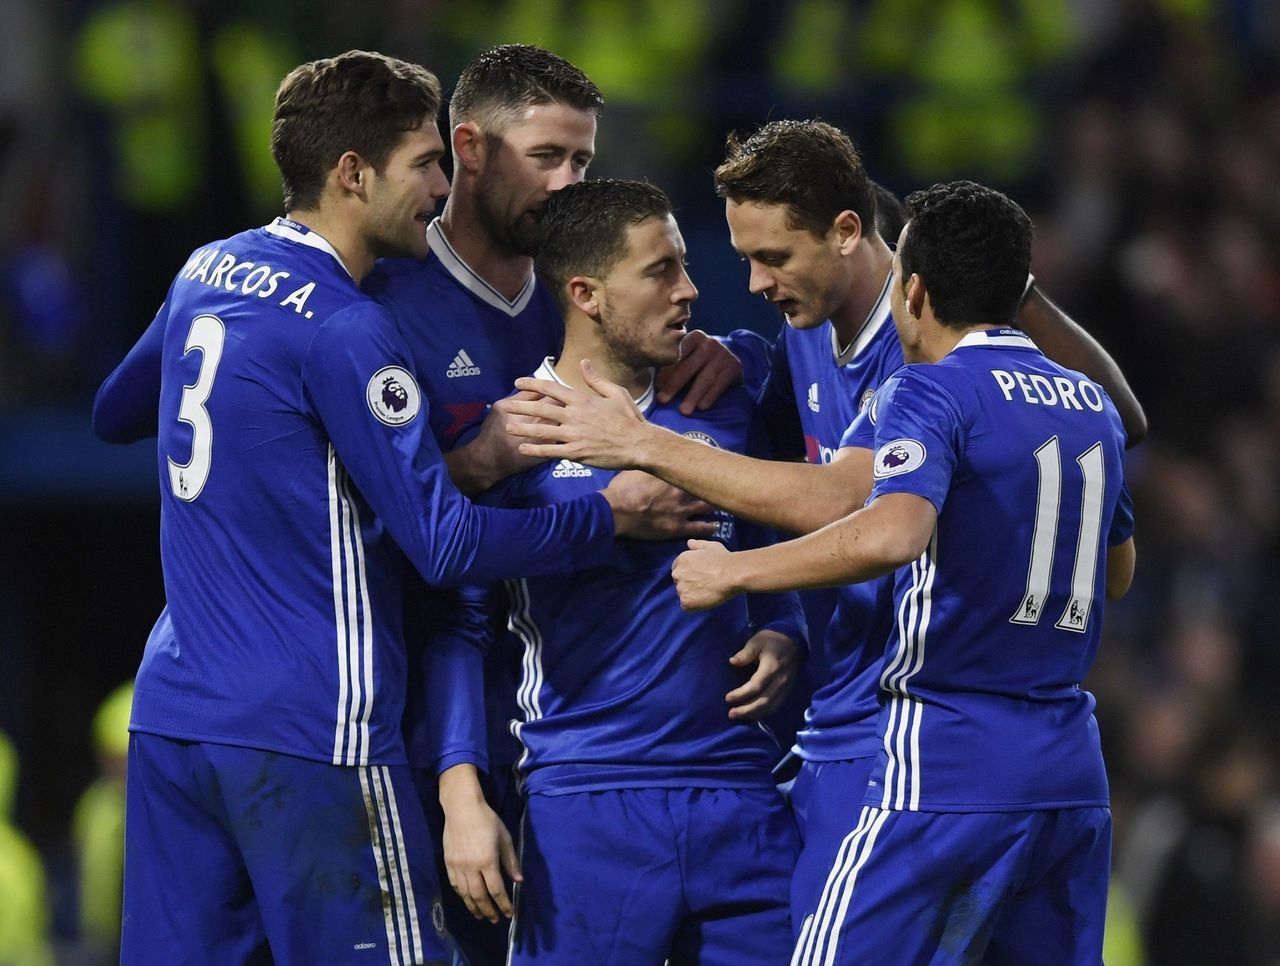 Chelsea set a club record with its 12th consecutive Premier League victory on Monday, Eden Hazard stealing the show at Stamford Bridge to lead the Blues to a 3-0 triumph over Bournemouth.